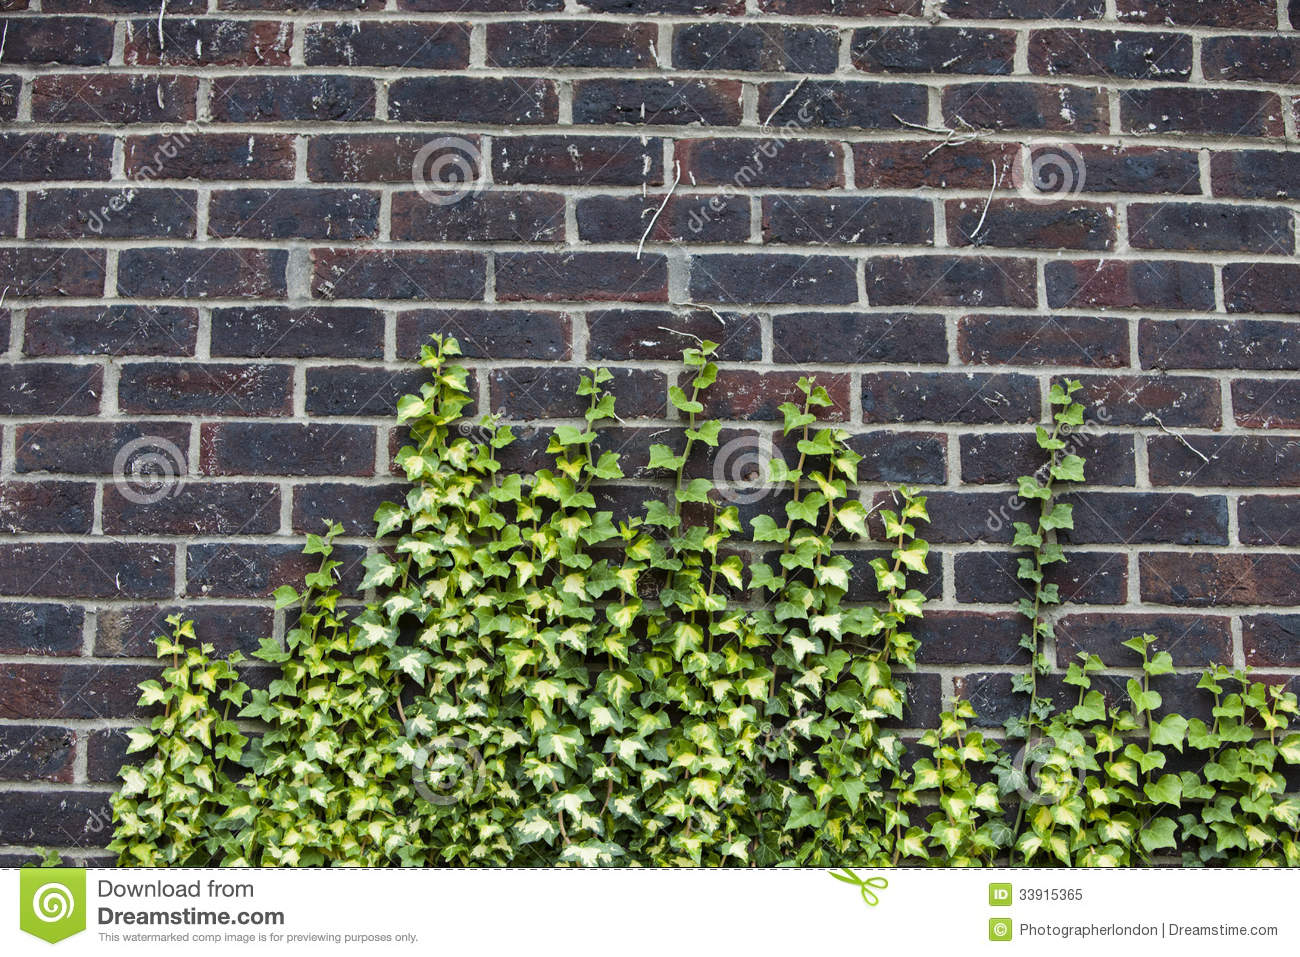 Concrete Wall With Ivy Growing Up It Stock Image Image